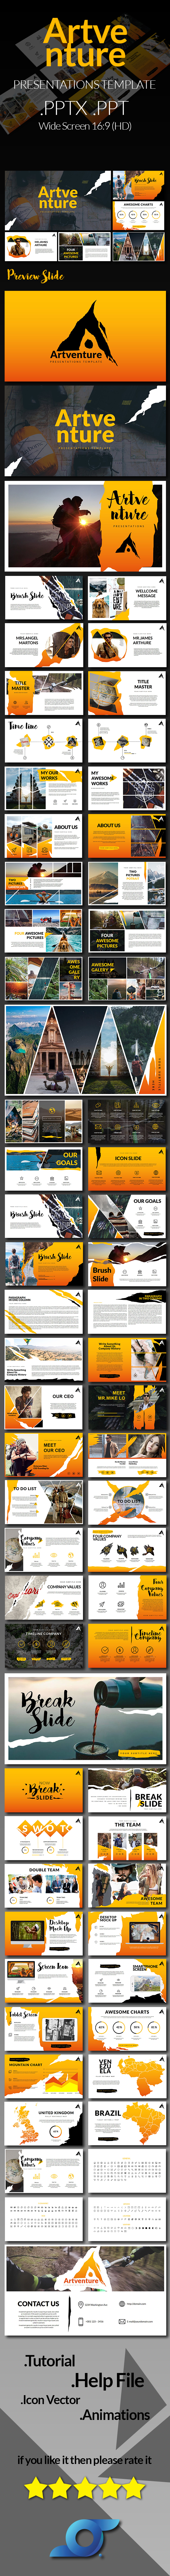 Artventure Presentation Templates - Abstract PowerPoint Templates